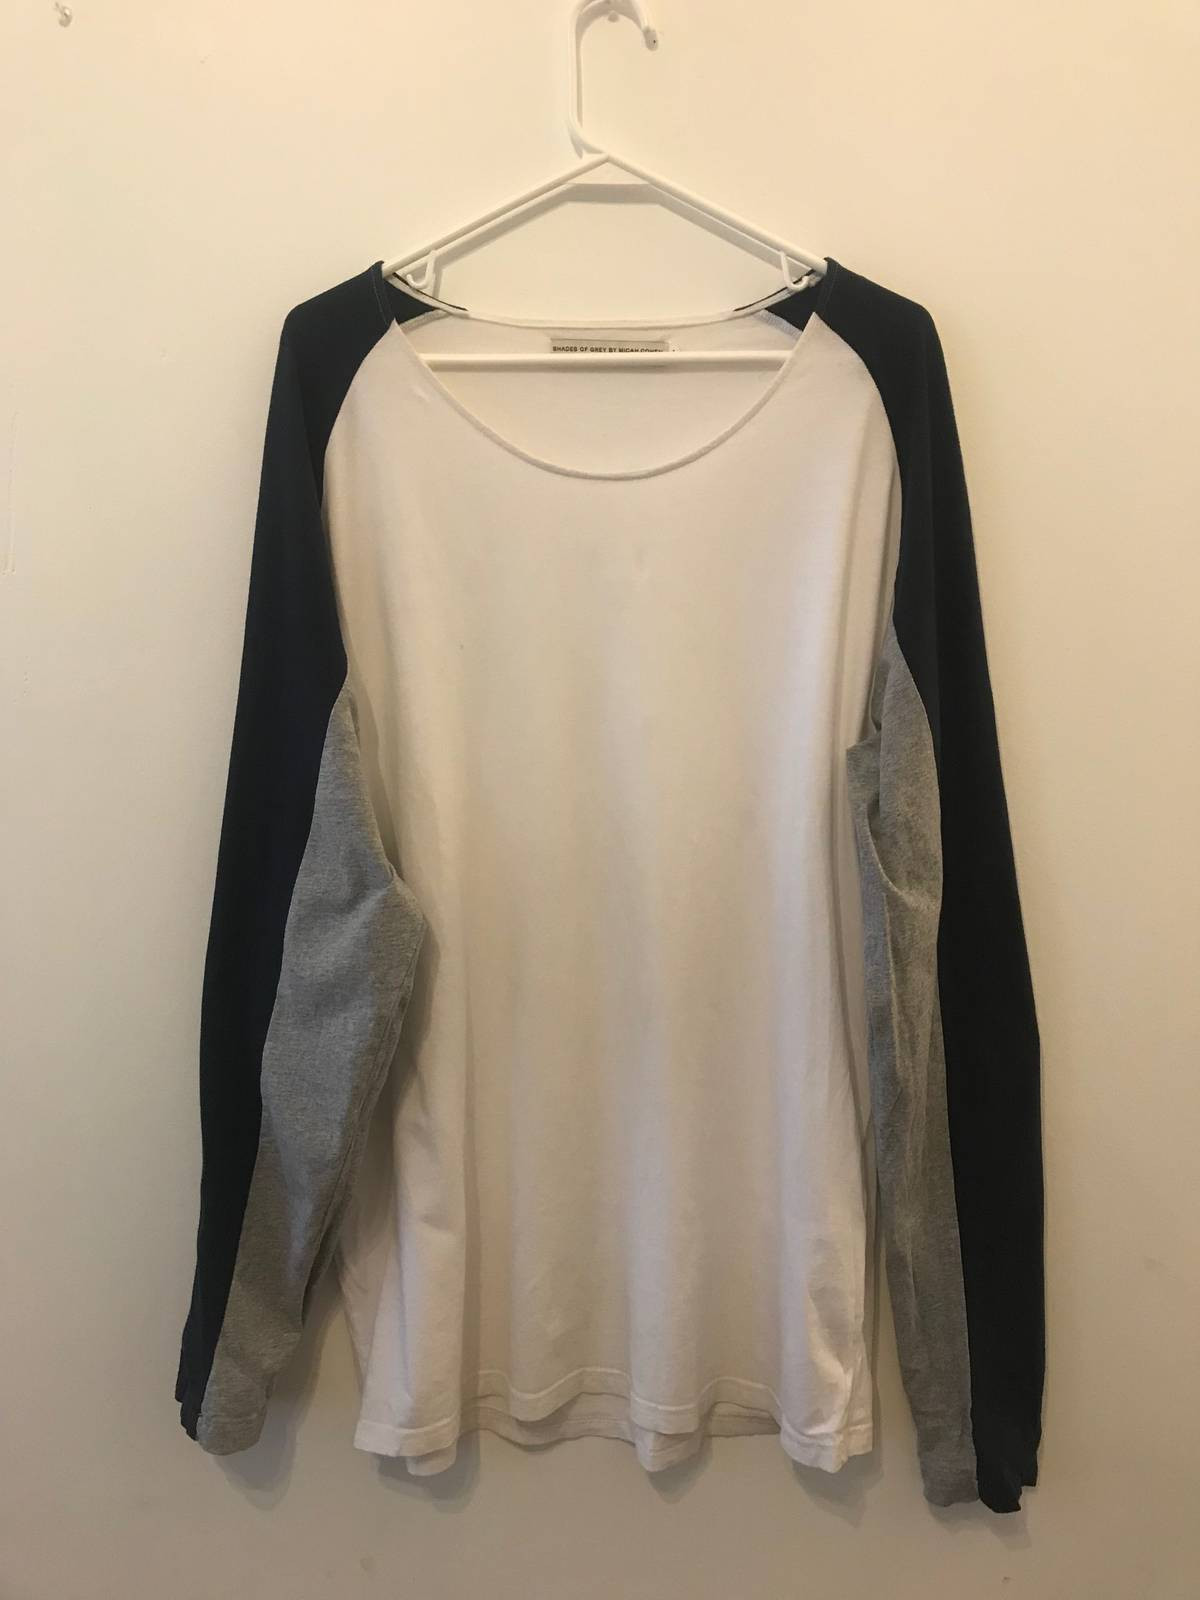 eb059b5ffe3f2 Shades Of Grey Shades Of Grey By Micah Cohen Oversized Color Block Long  Sleeve T-shirt